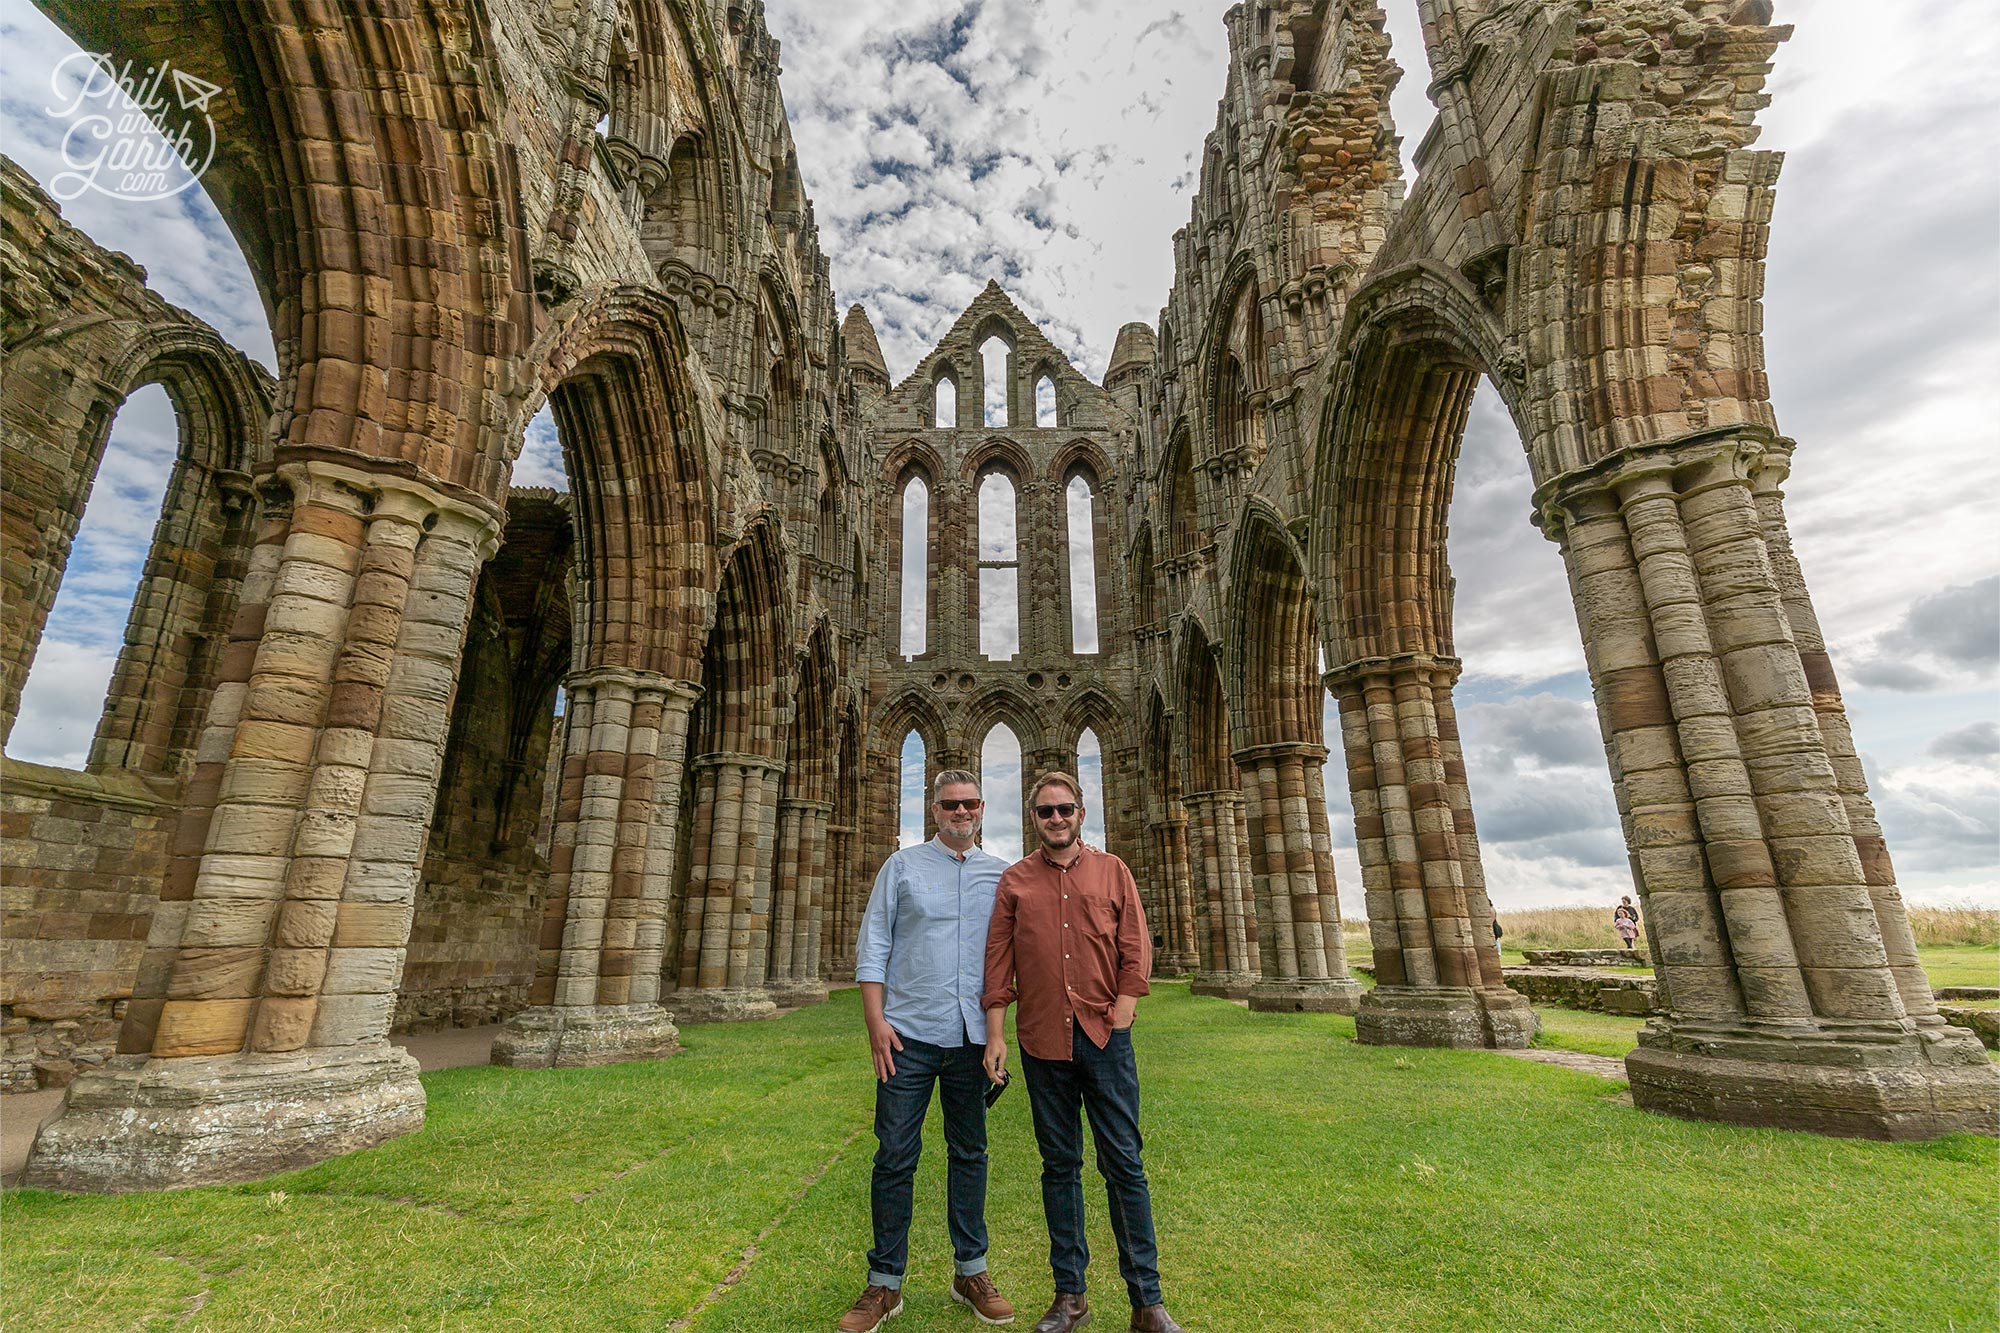 Phil and Garth at the Gothic ruins of Whitby Abbey